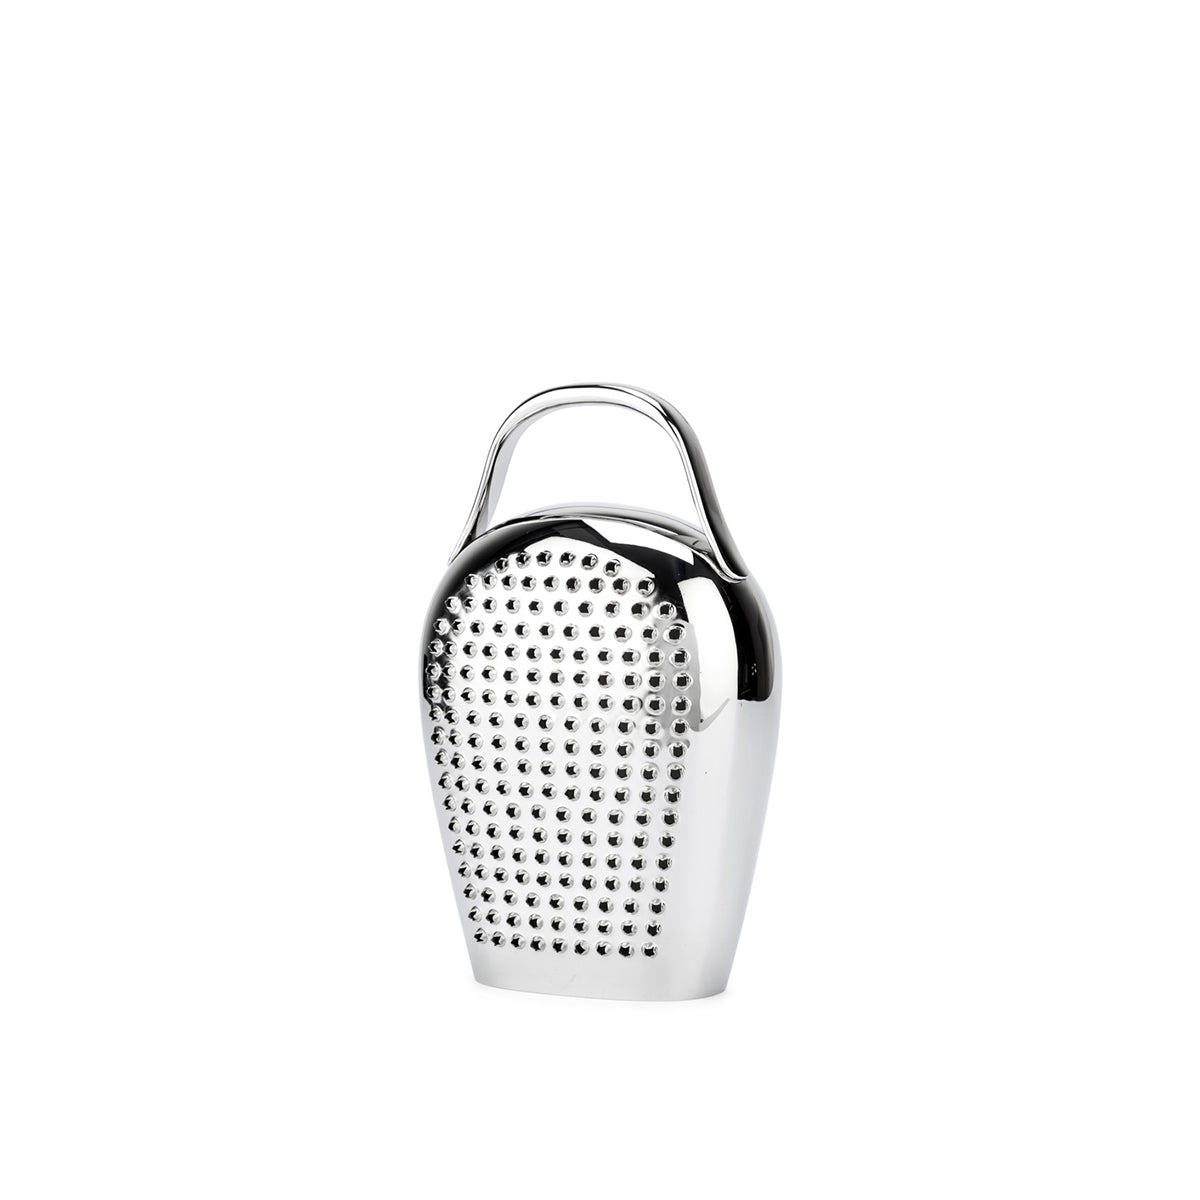 Cheese Please Grater